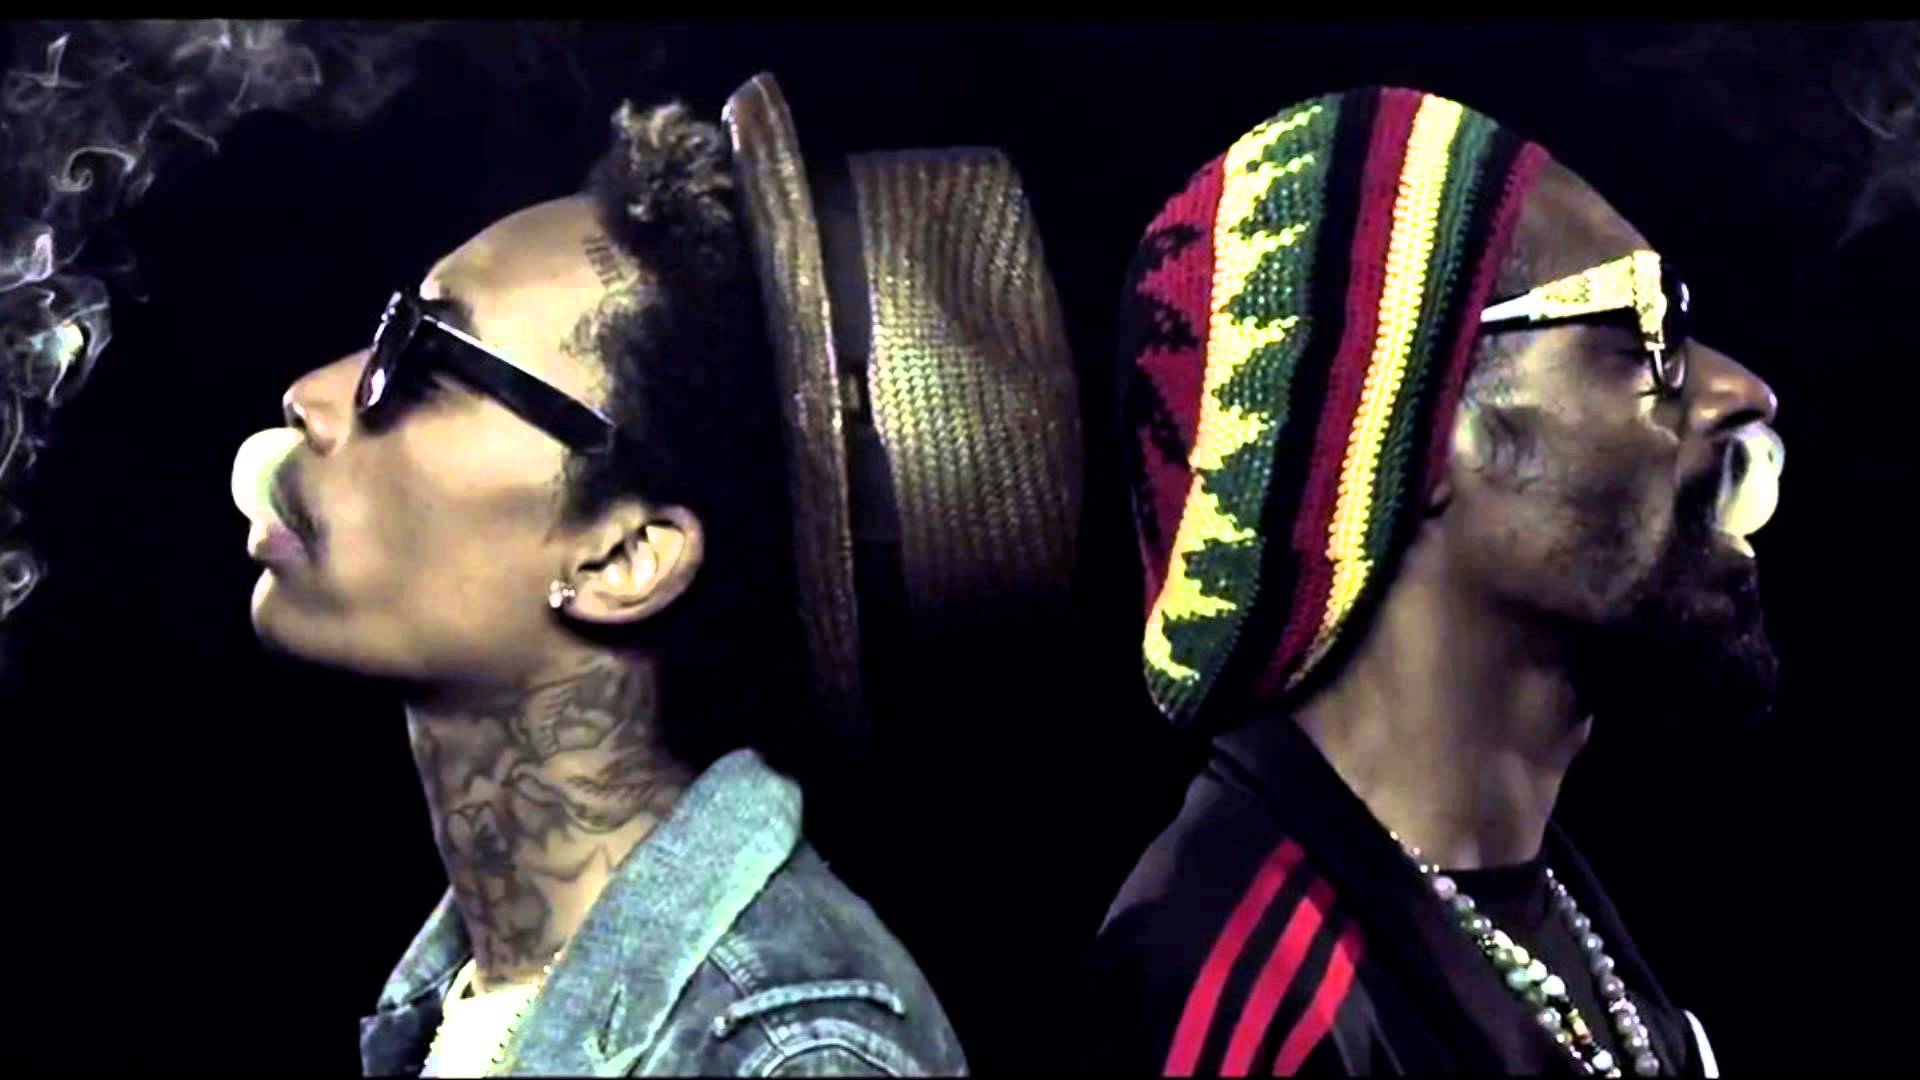 1920x1080 Wiz Khalifa Wallpapers Images ~ Desktop Wallpaper Box